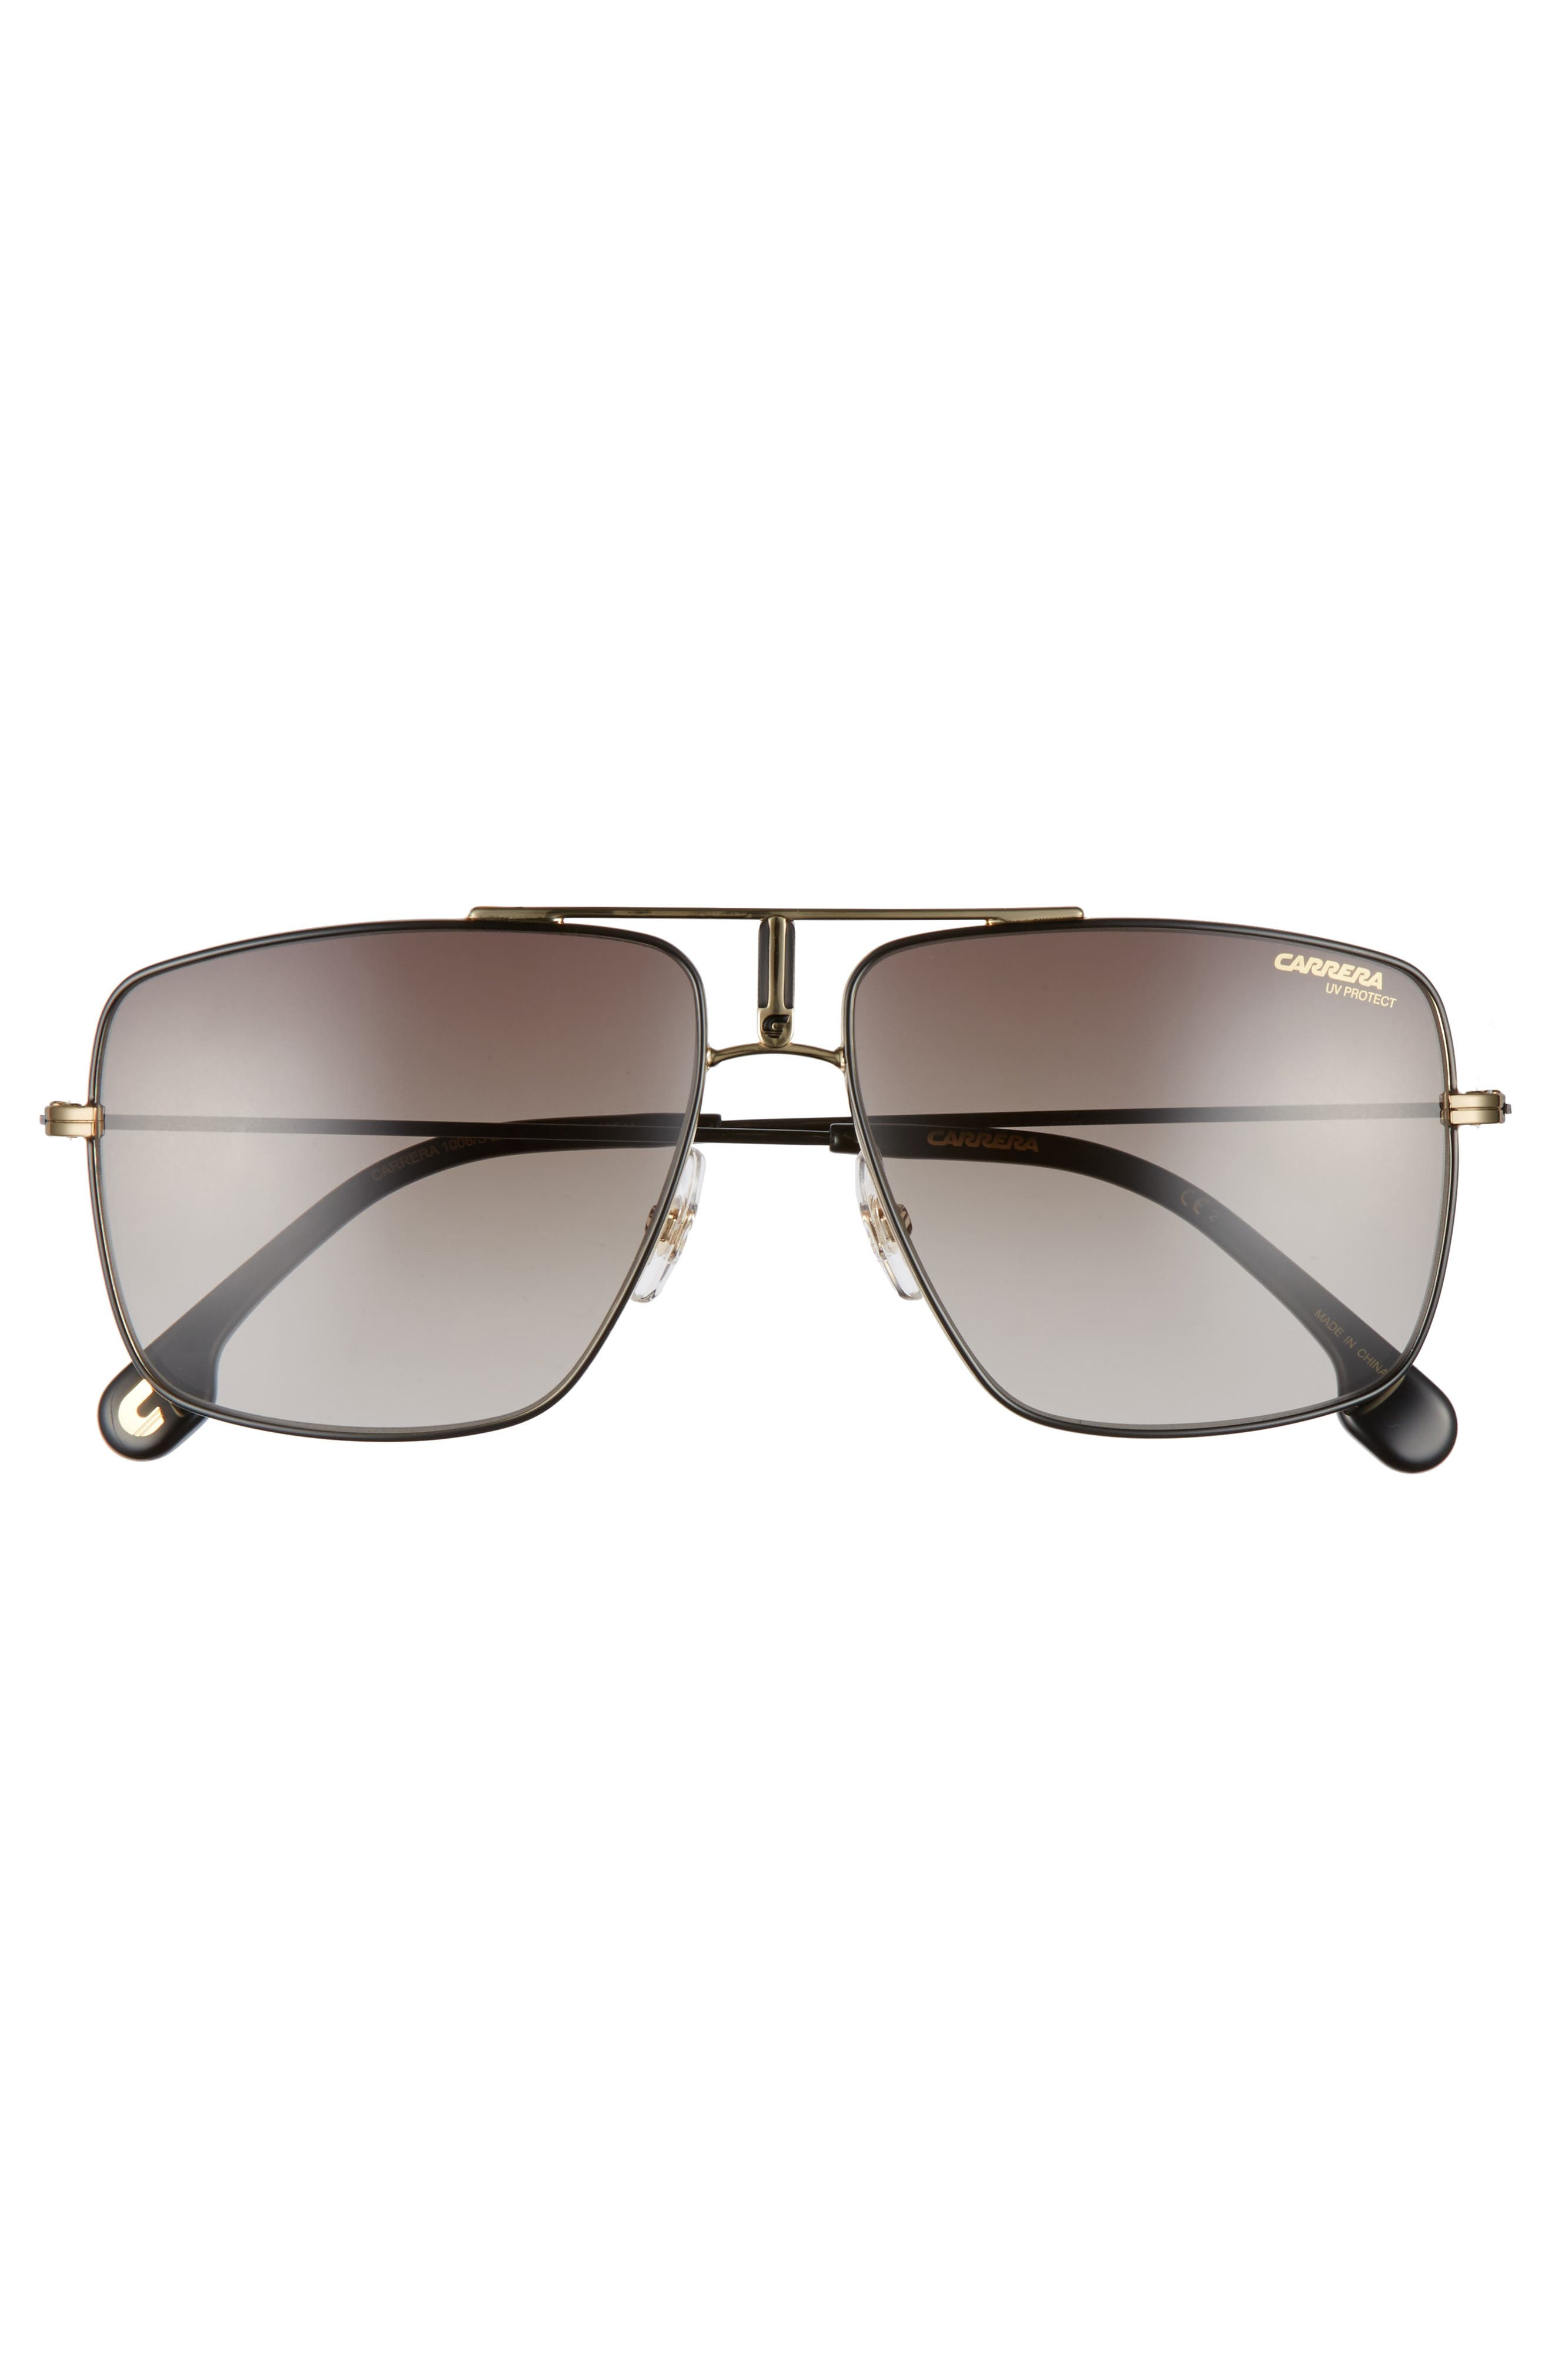 Carrera 60mm Aviator Sunglasses,                             Alternate thumbnail 2, color,                             BLACK GOLD